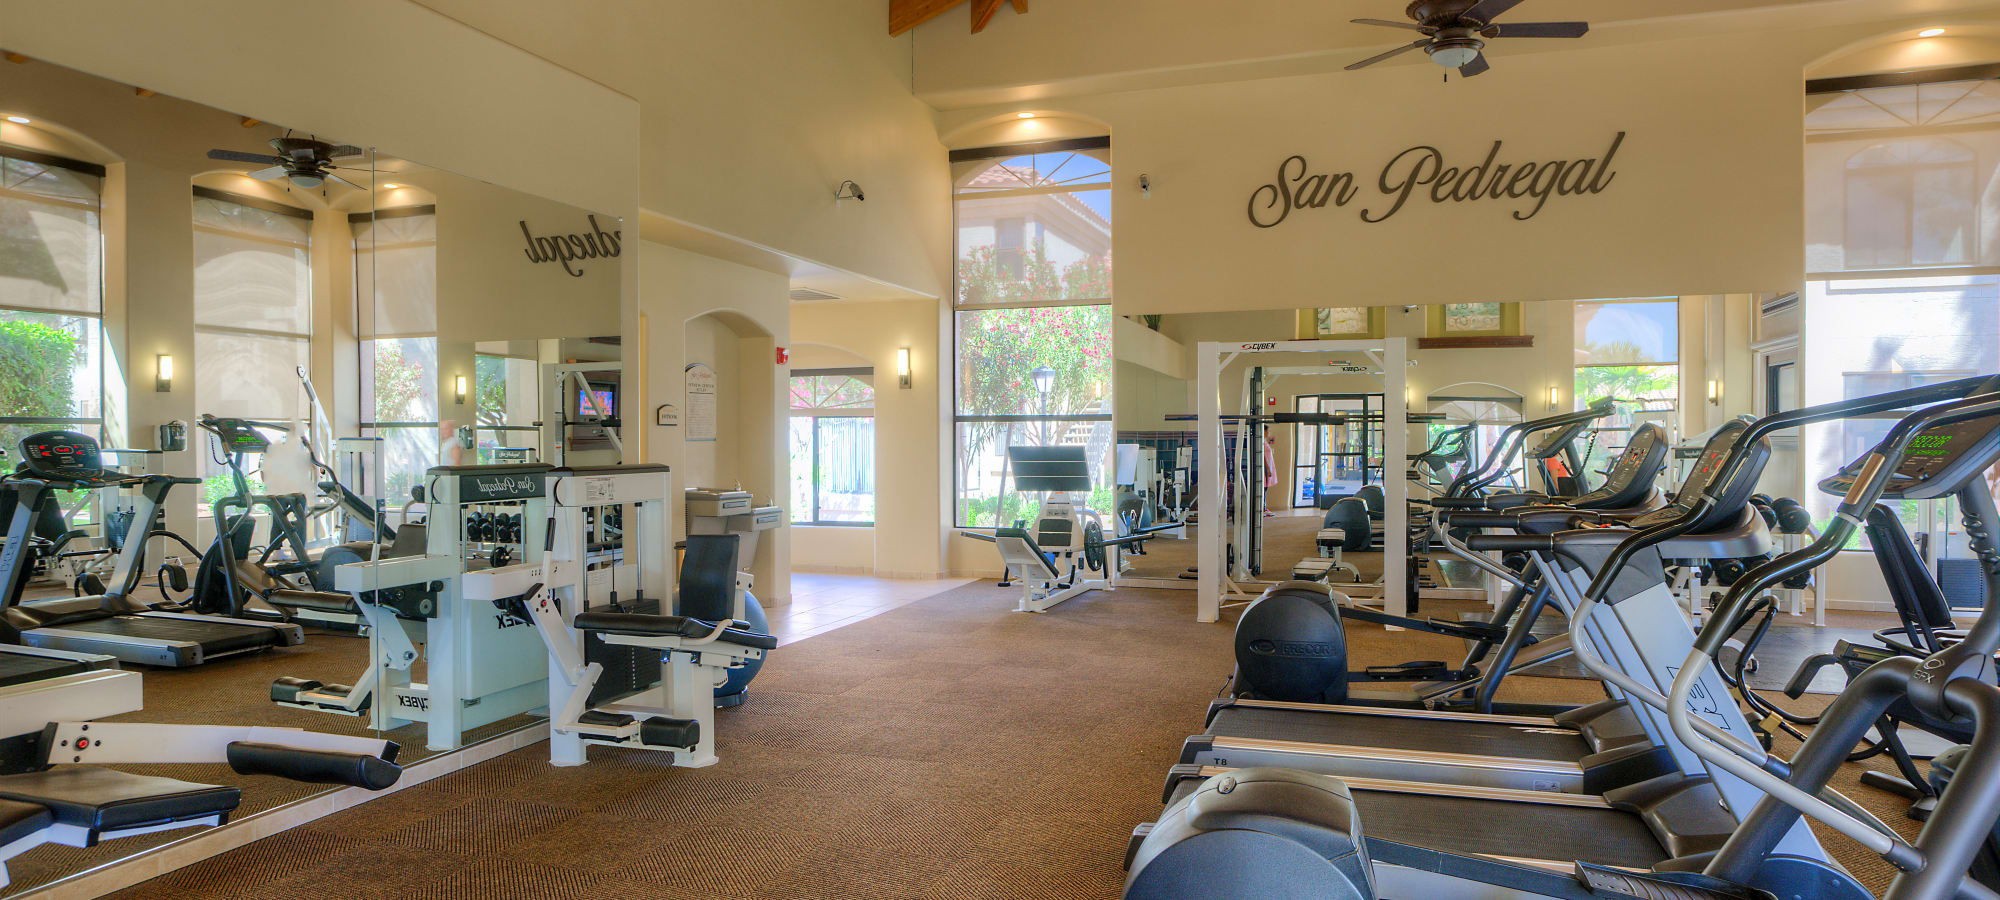 Very well-equipped fitness center at San Pedregal in Phoenix, Arizona